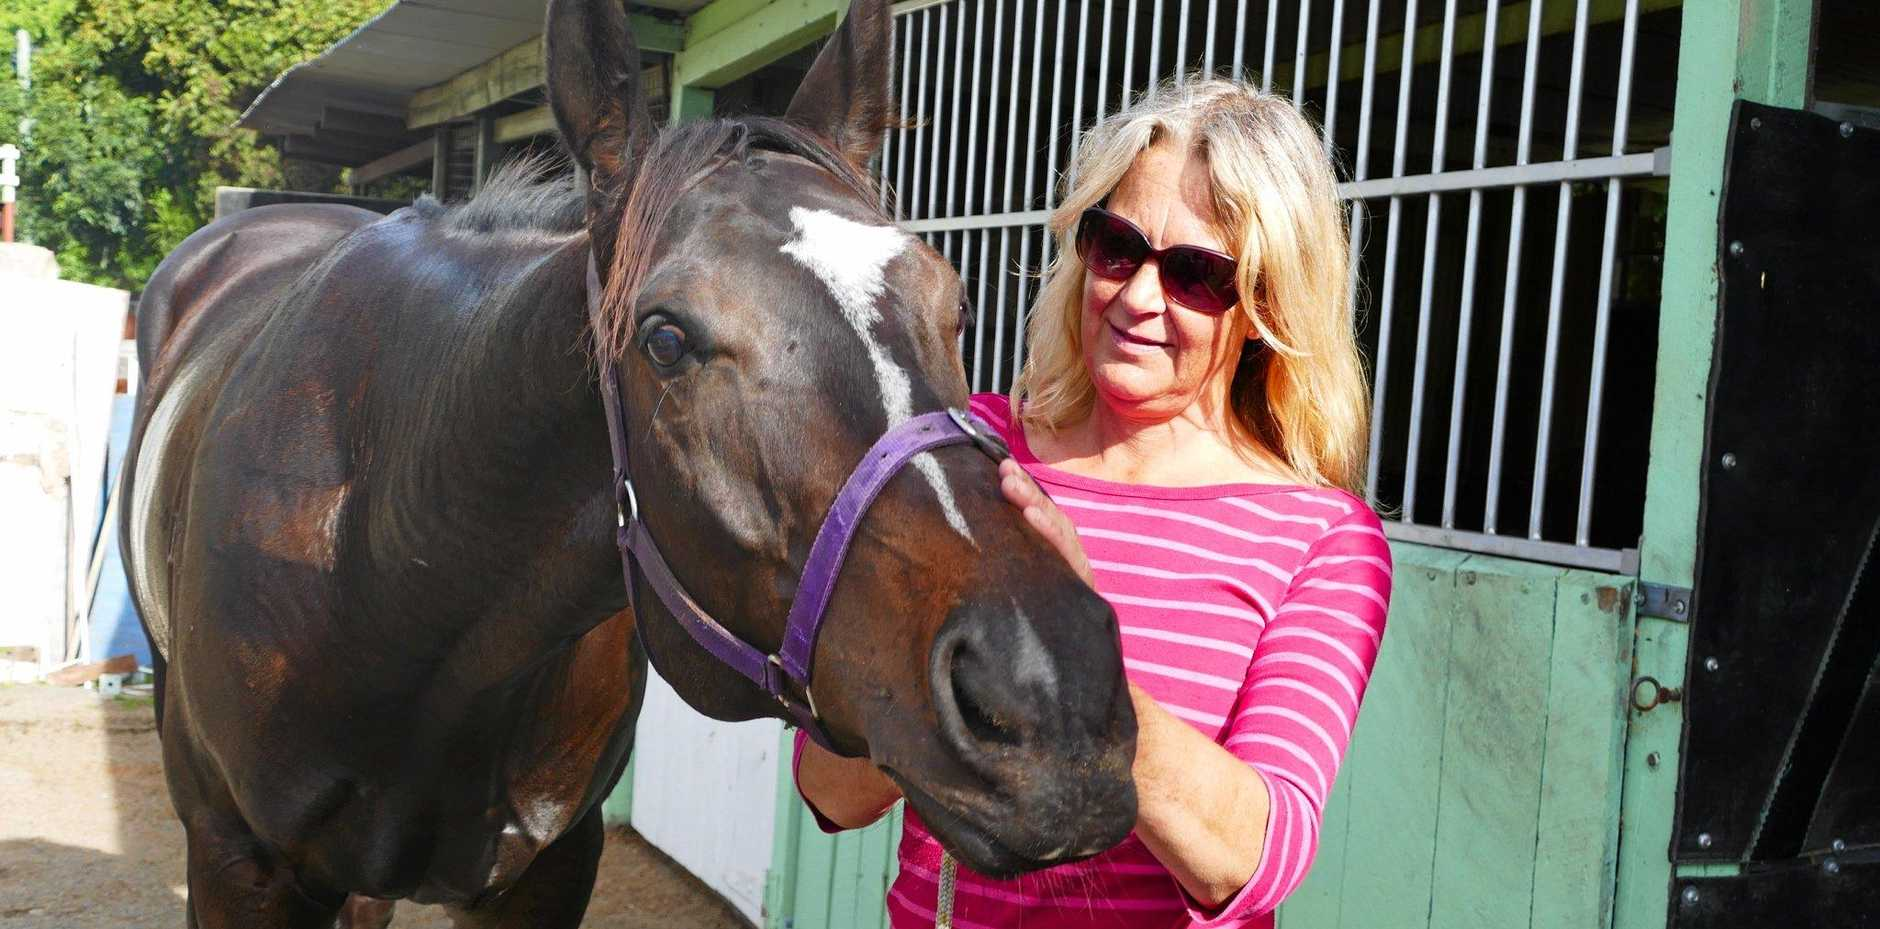 FAST MOVER: Steve's Surprise is placid around the stables, but has been dynamite on the race track since moving from Western Australia this year says his strapper Dee Kilner.